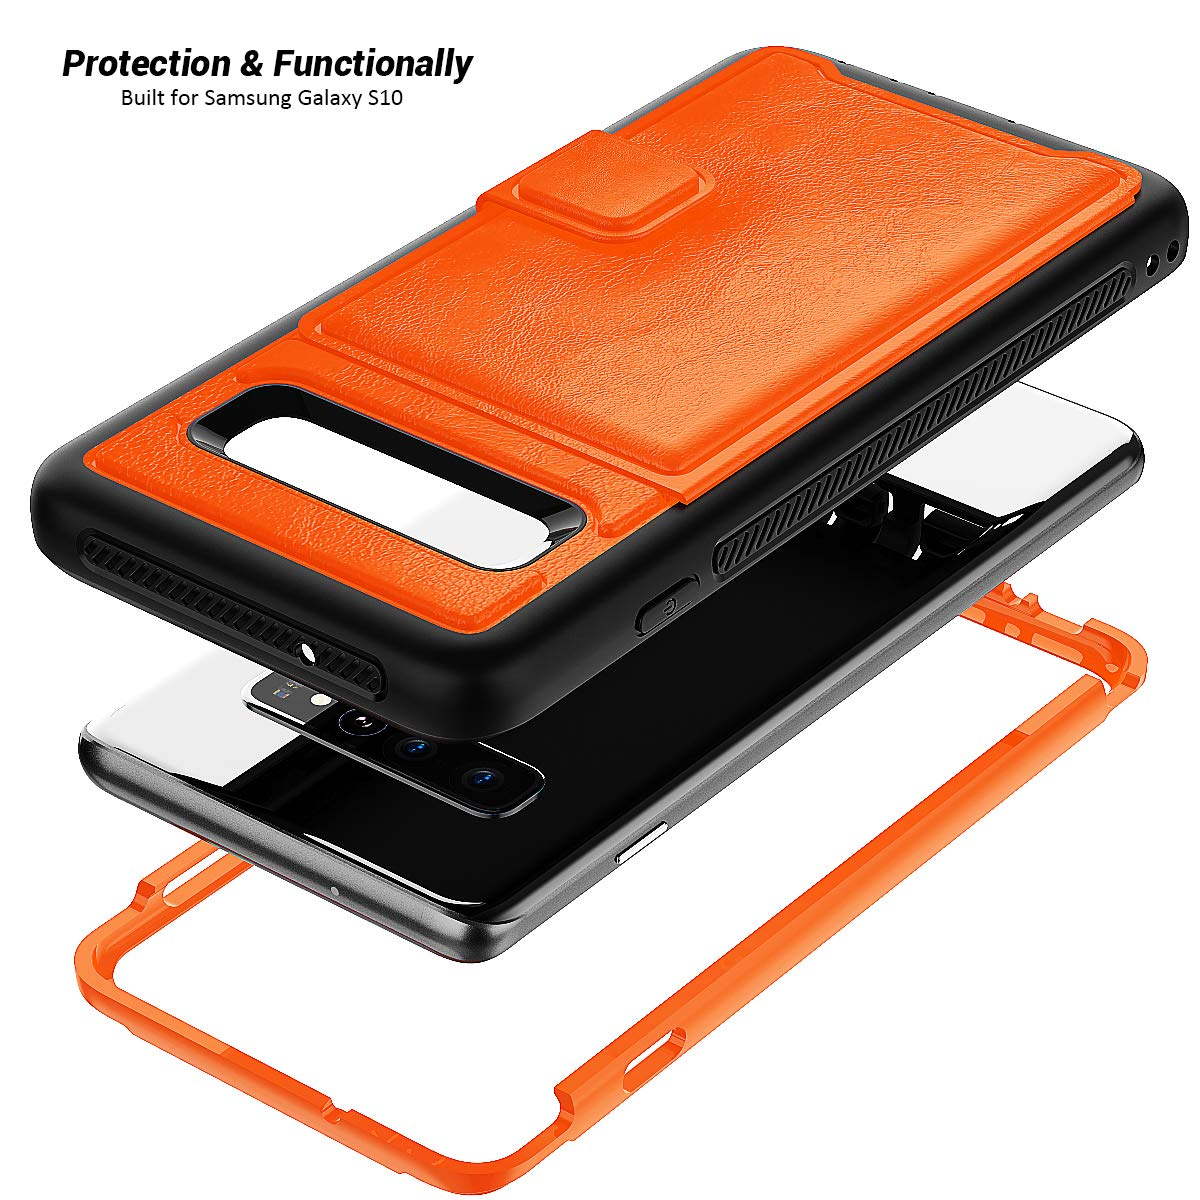 Galaxy S10 Plus Case, Sumsung S10 Plus Wallet Card Slots Holders Kickstand Flip Cover Bumper PU Leather Hard PC Frame Magnetic Slim Shockproof Durable Shockproof Protective Case Cover (Orange)